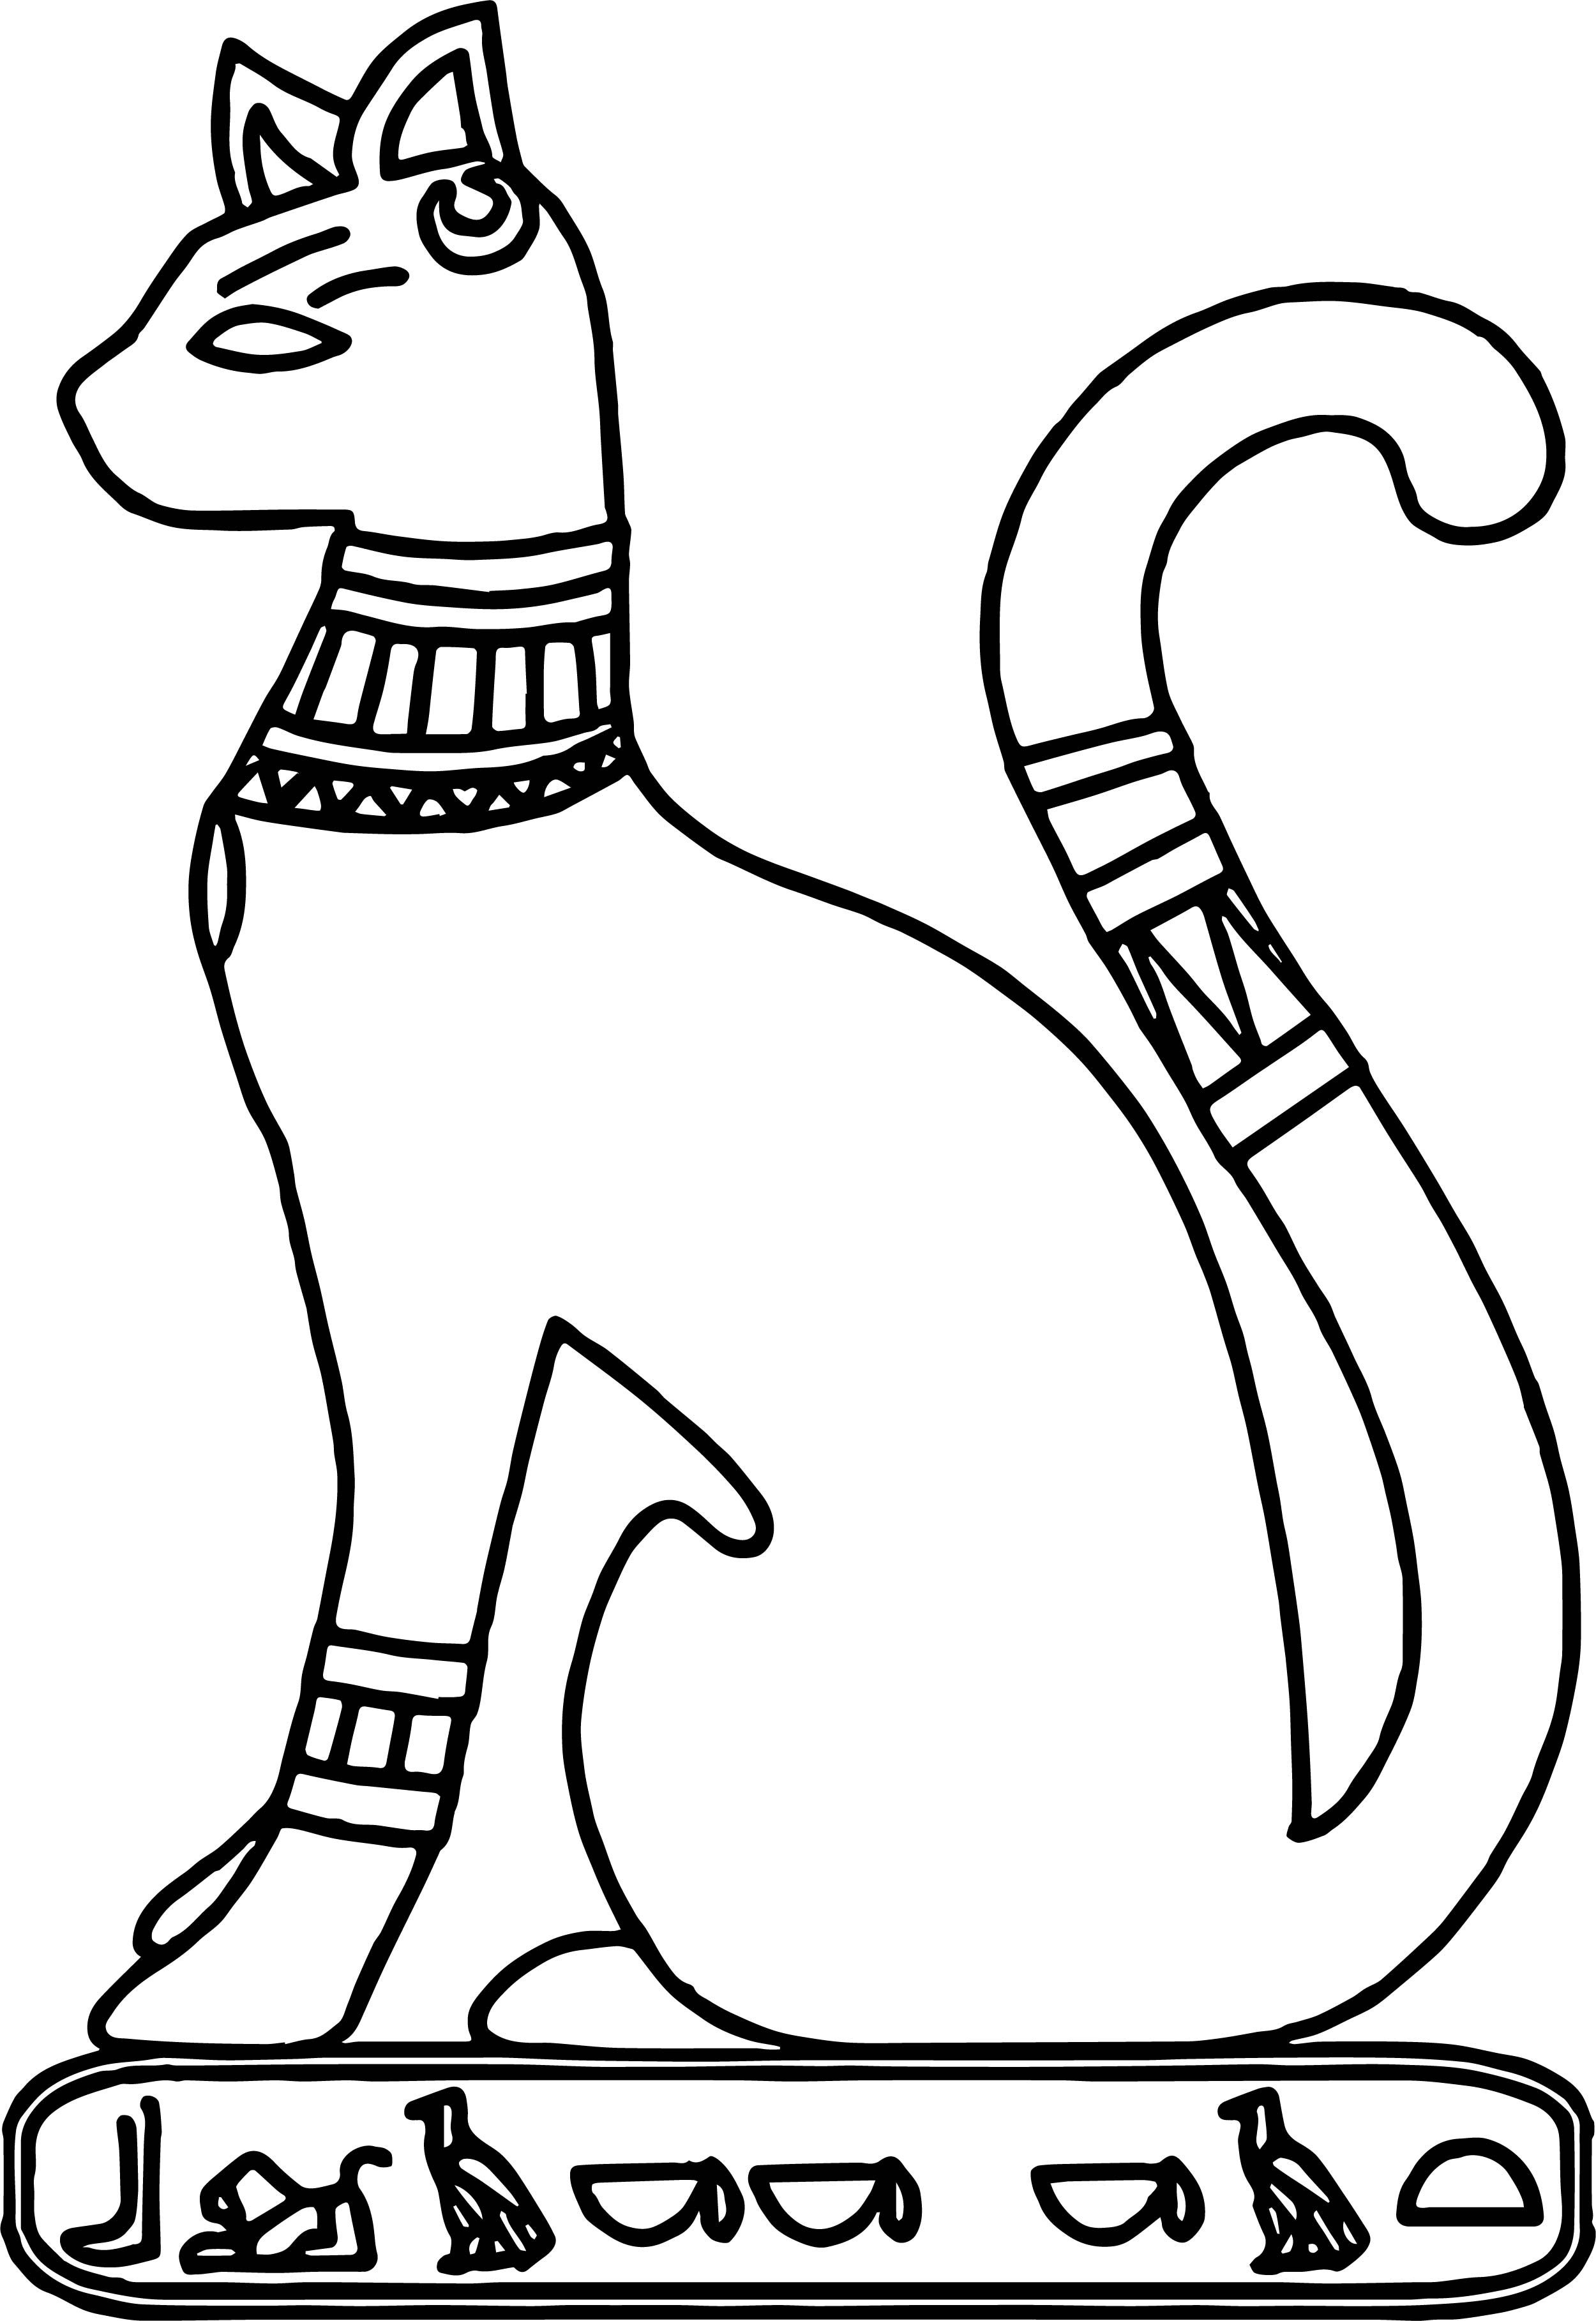 egyptian cat coloring page awesome new ancient egypt cat coloring page cat coloring egyptian cat coloring page